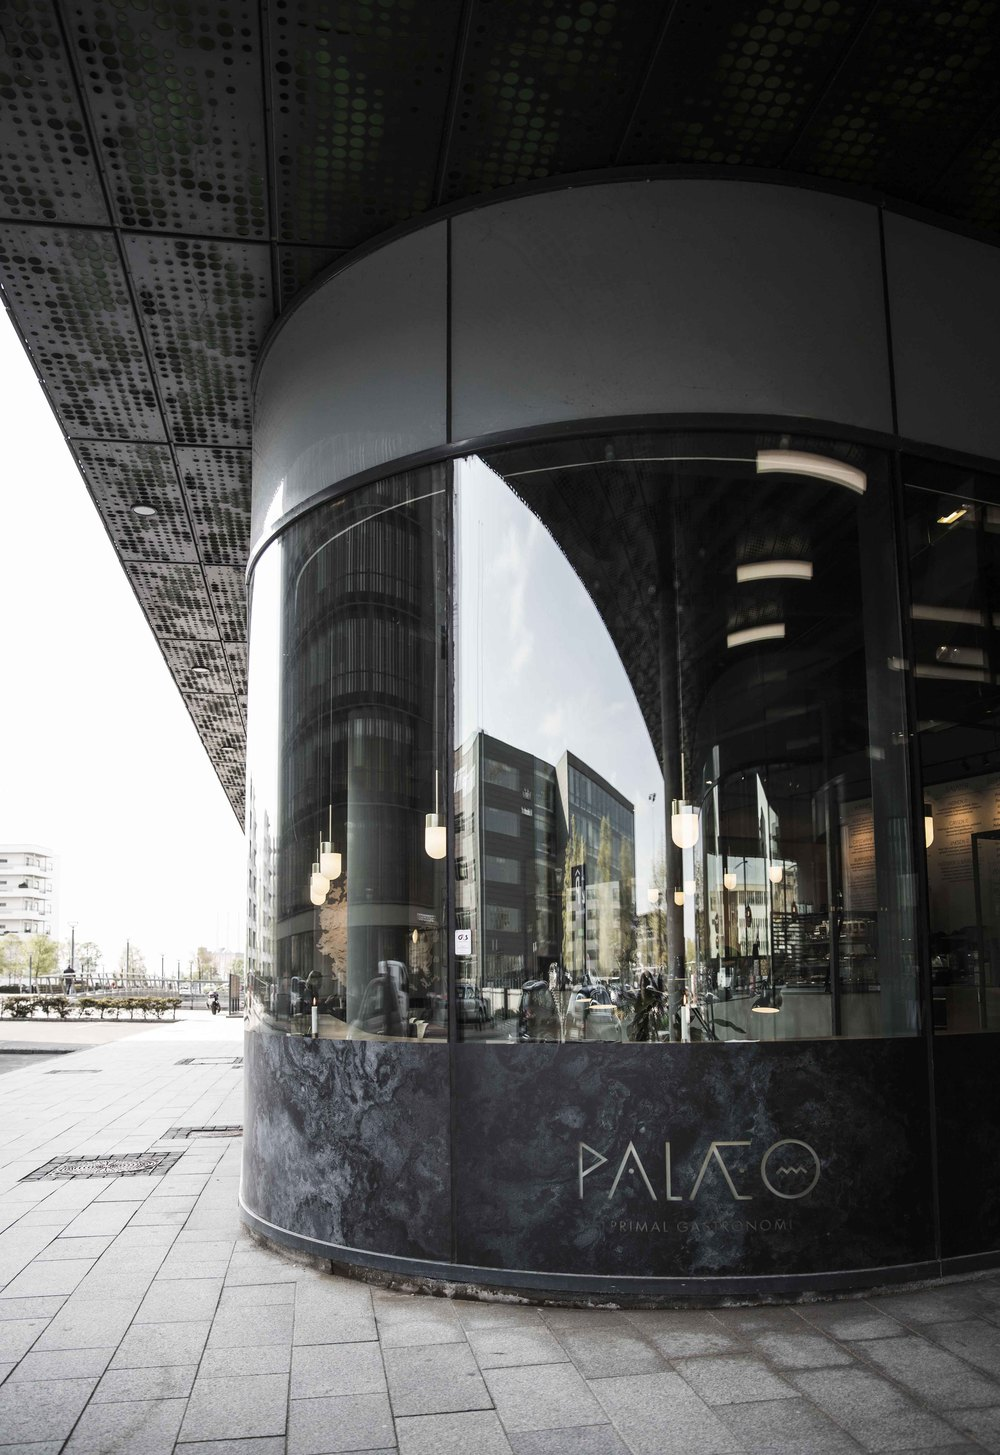 Picture of the facade of a palæo restaurant in Copenhagen